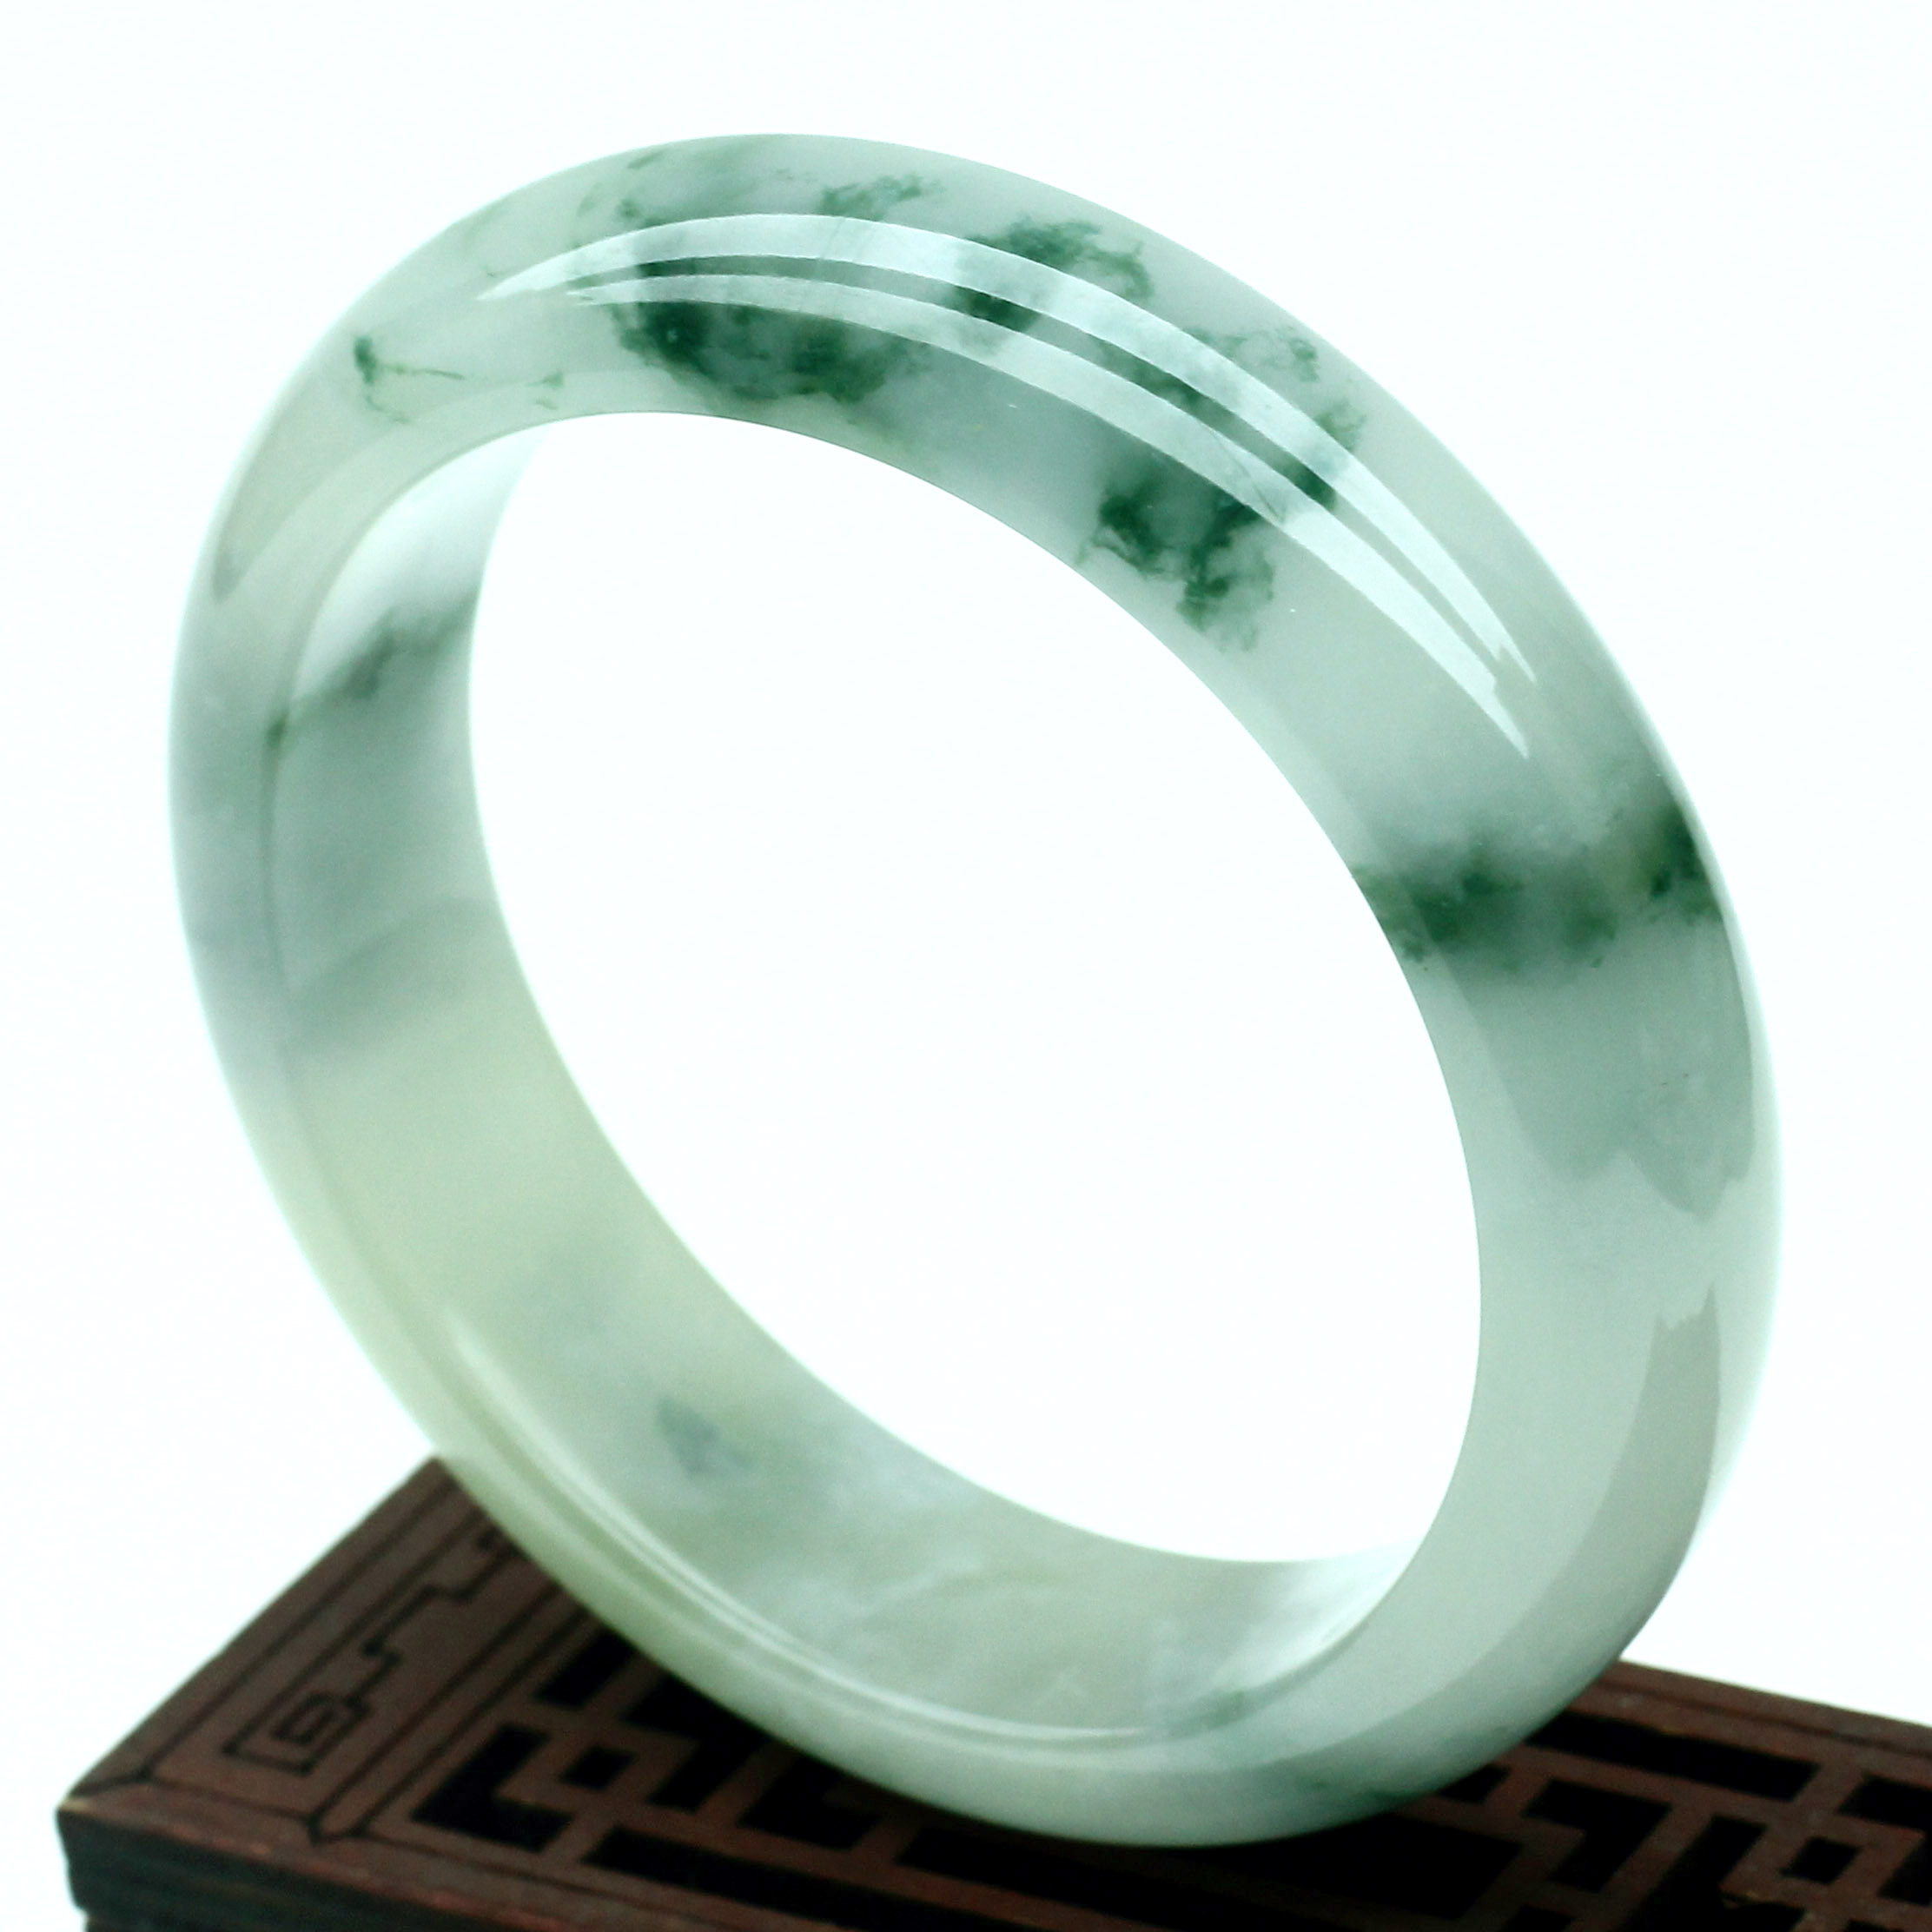 Laokeng genuine natural Myanmar jade jade bracelet ice waxy oil green floating flower green jade bracelet jade jade for mother